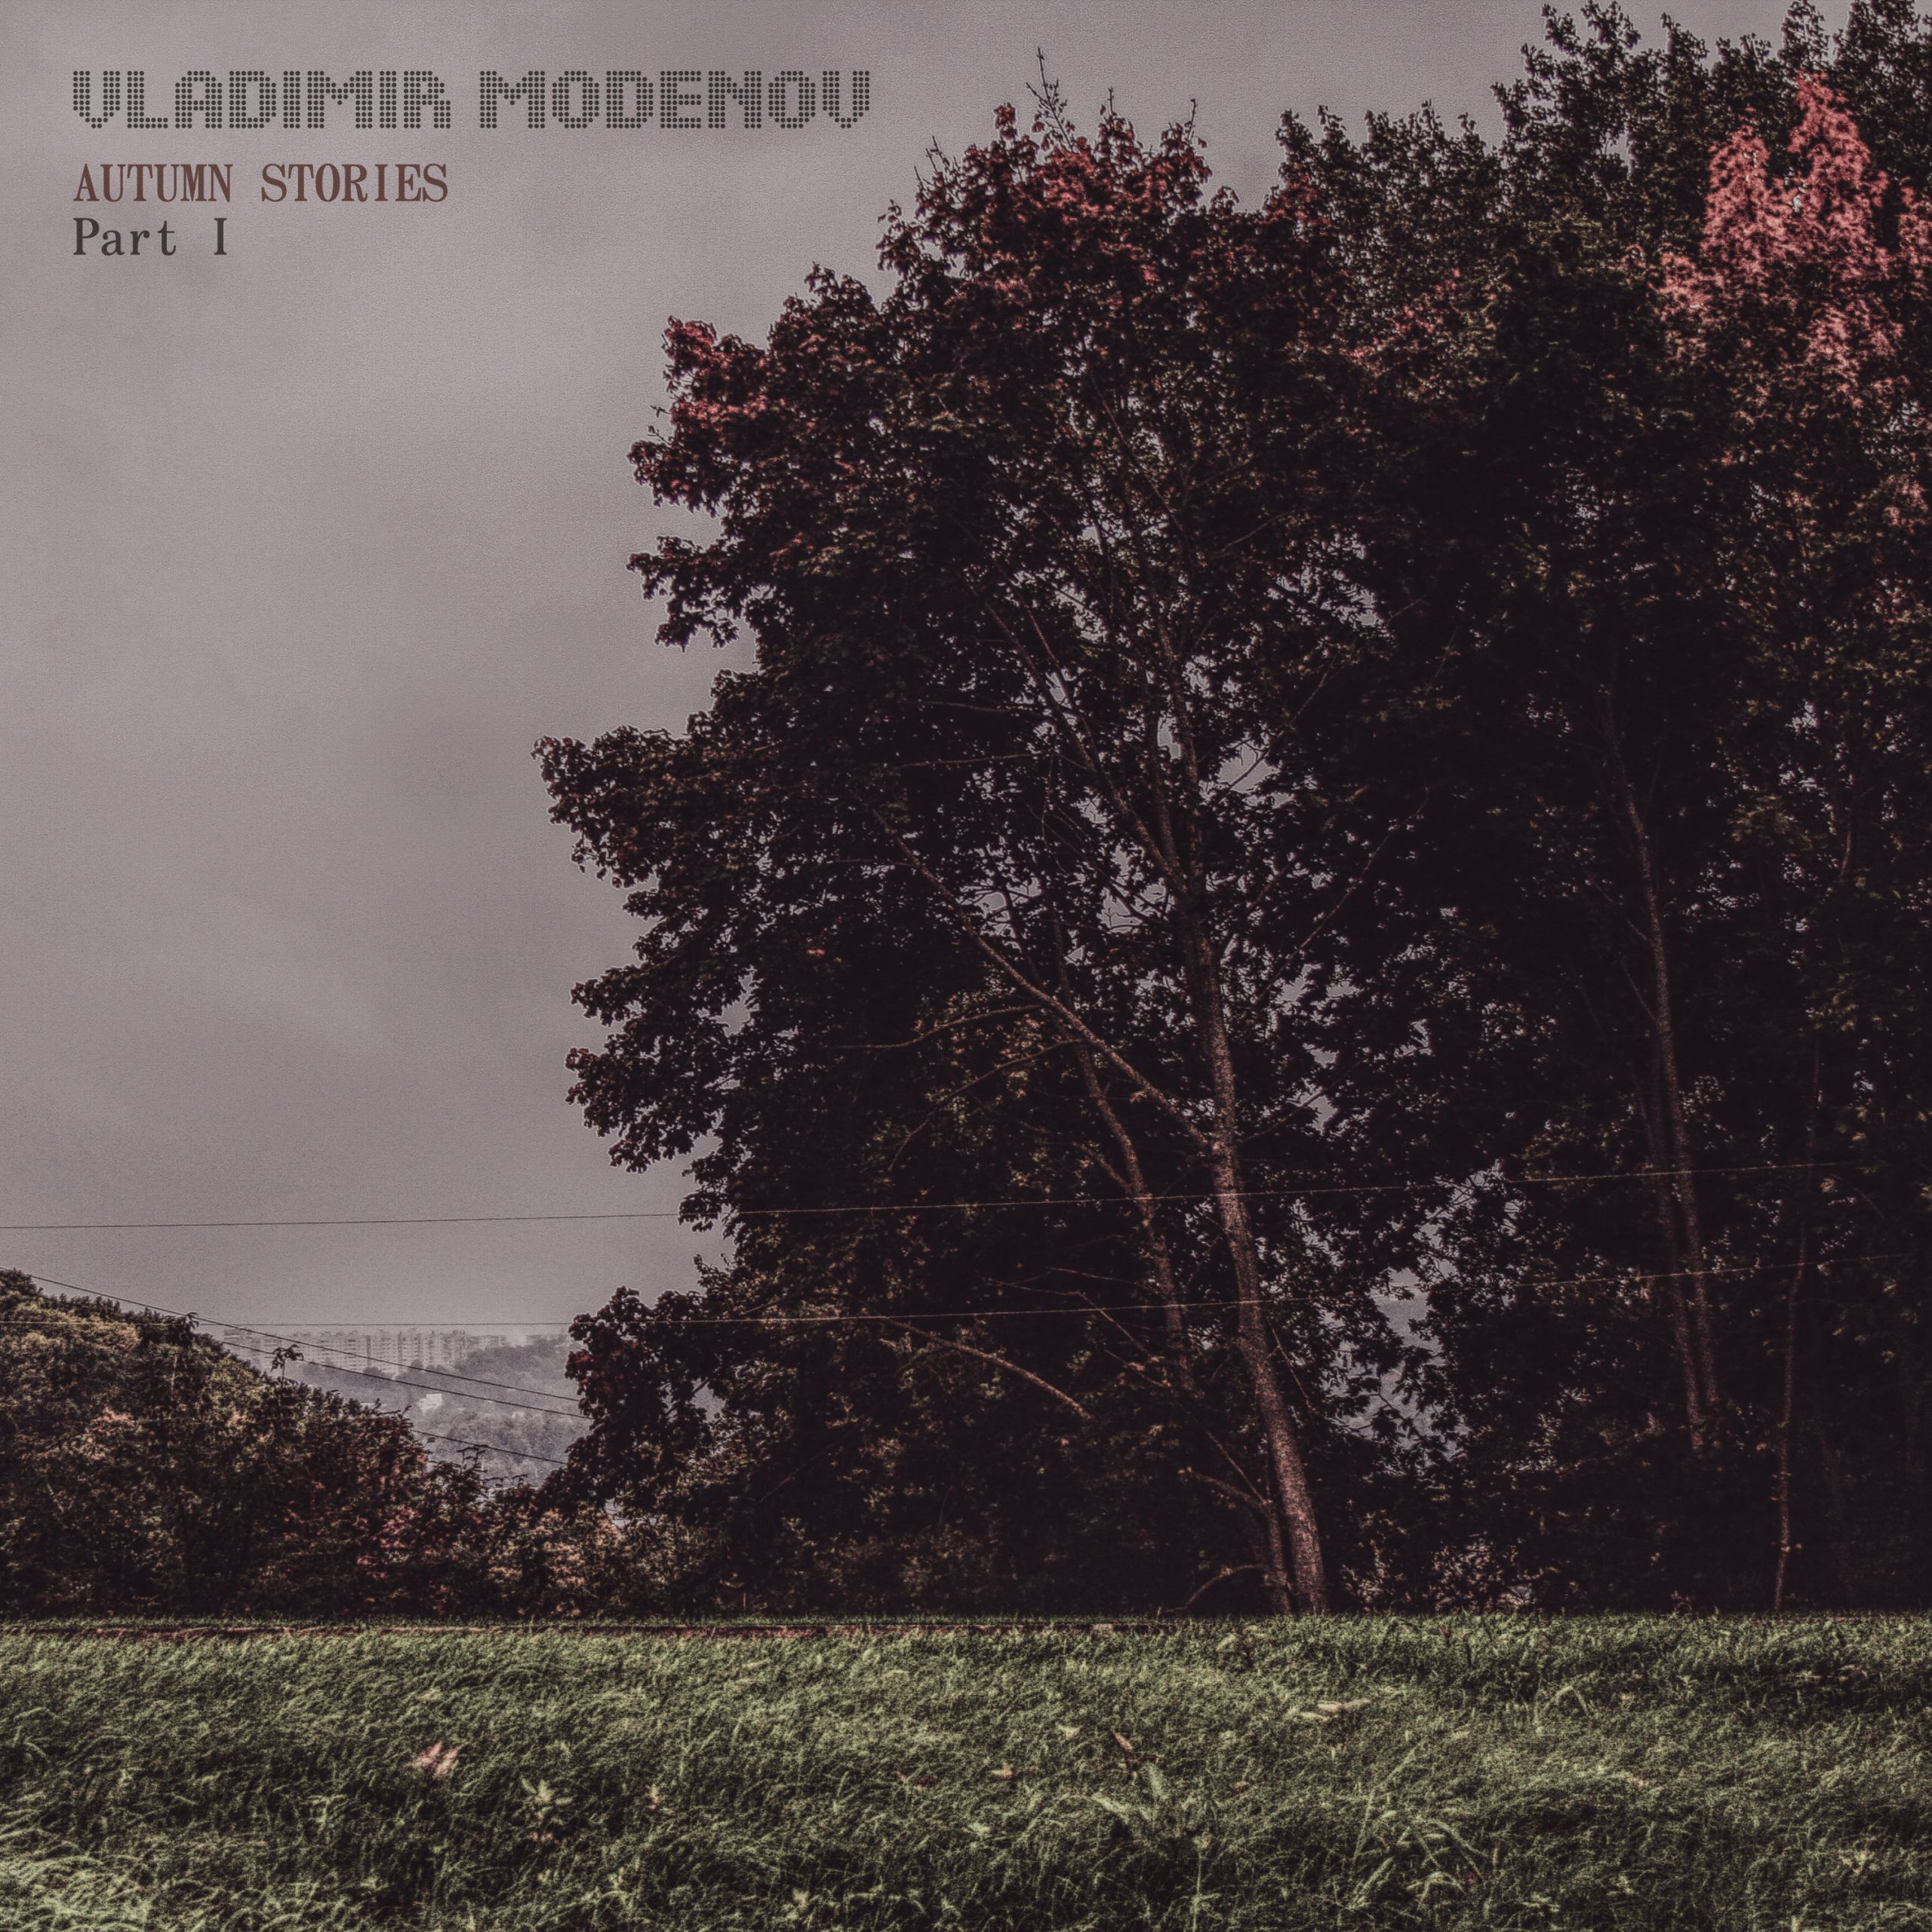 Vladimir Modenov - Autumn Stories, Pt. 1